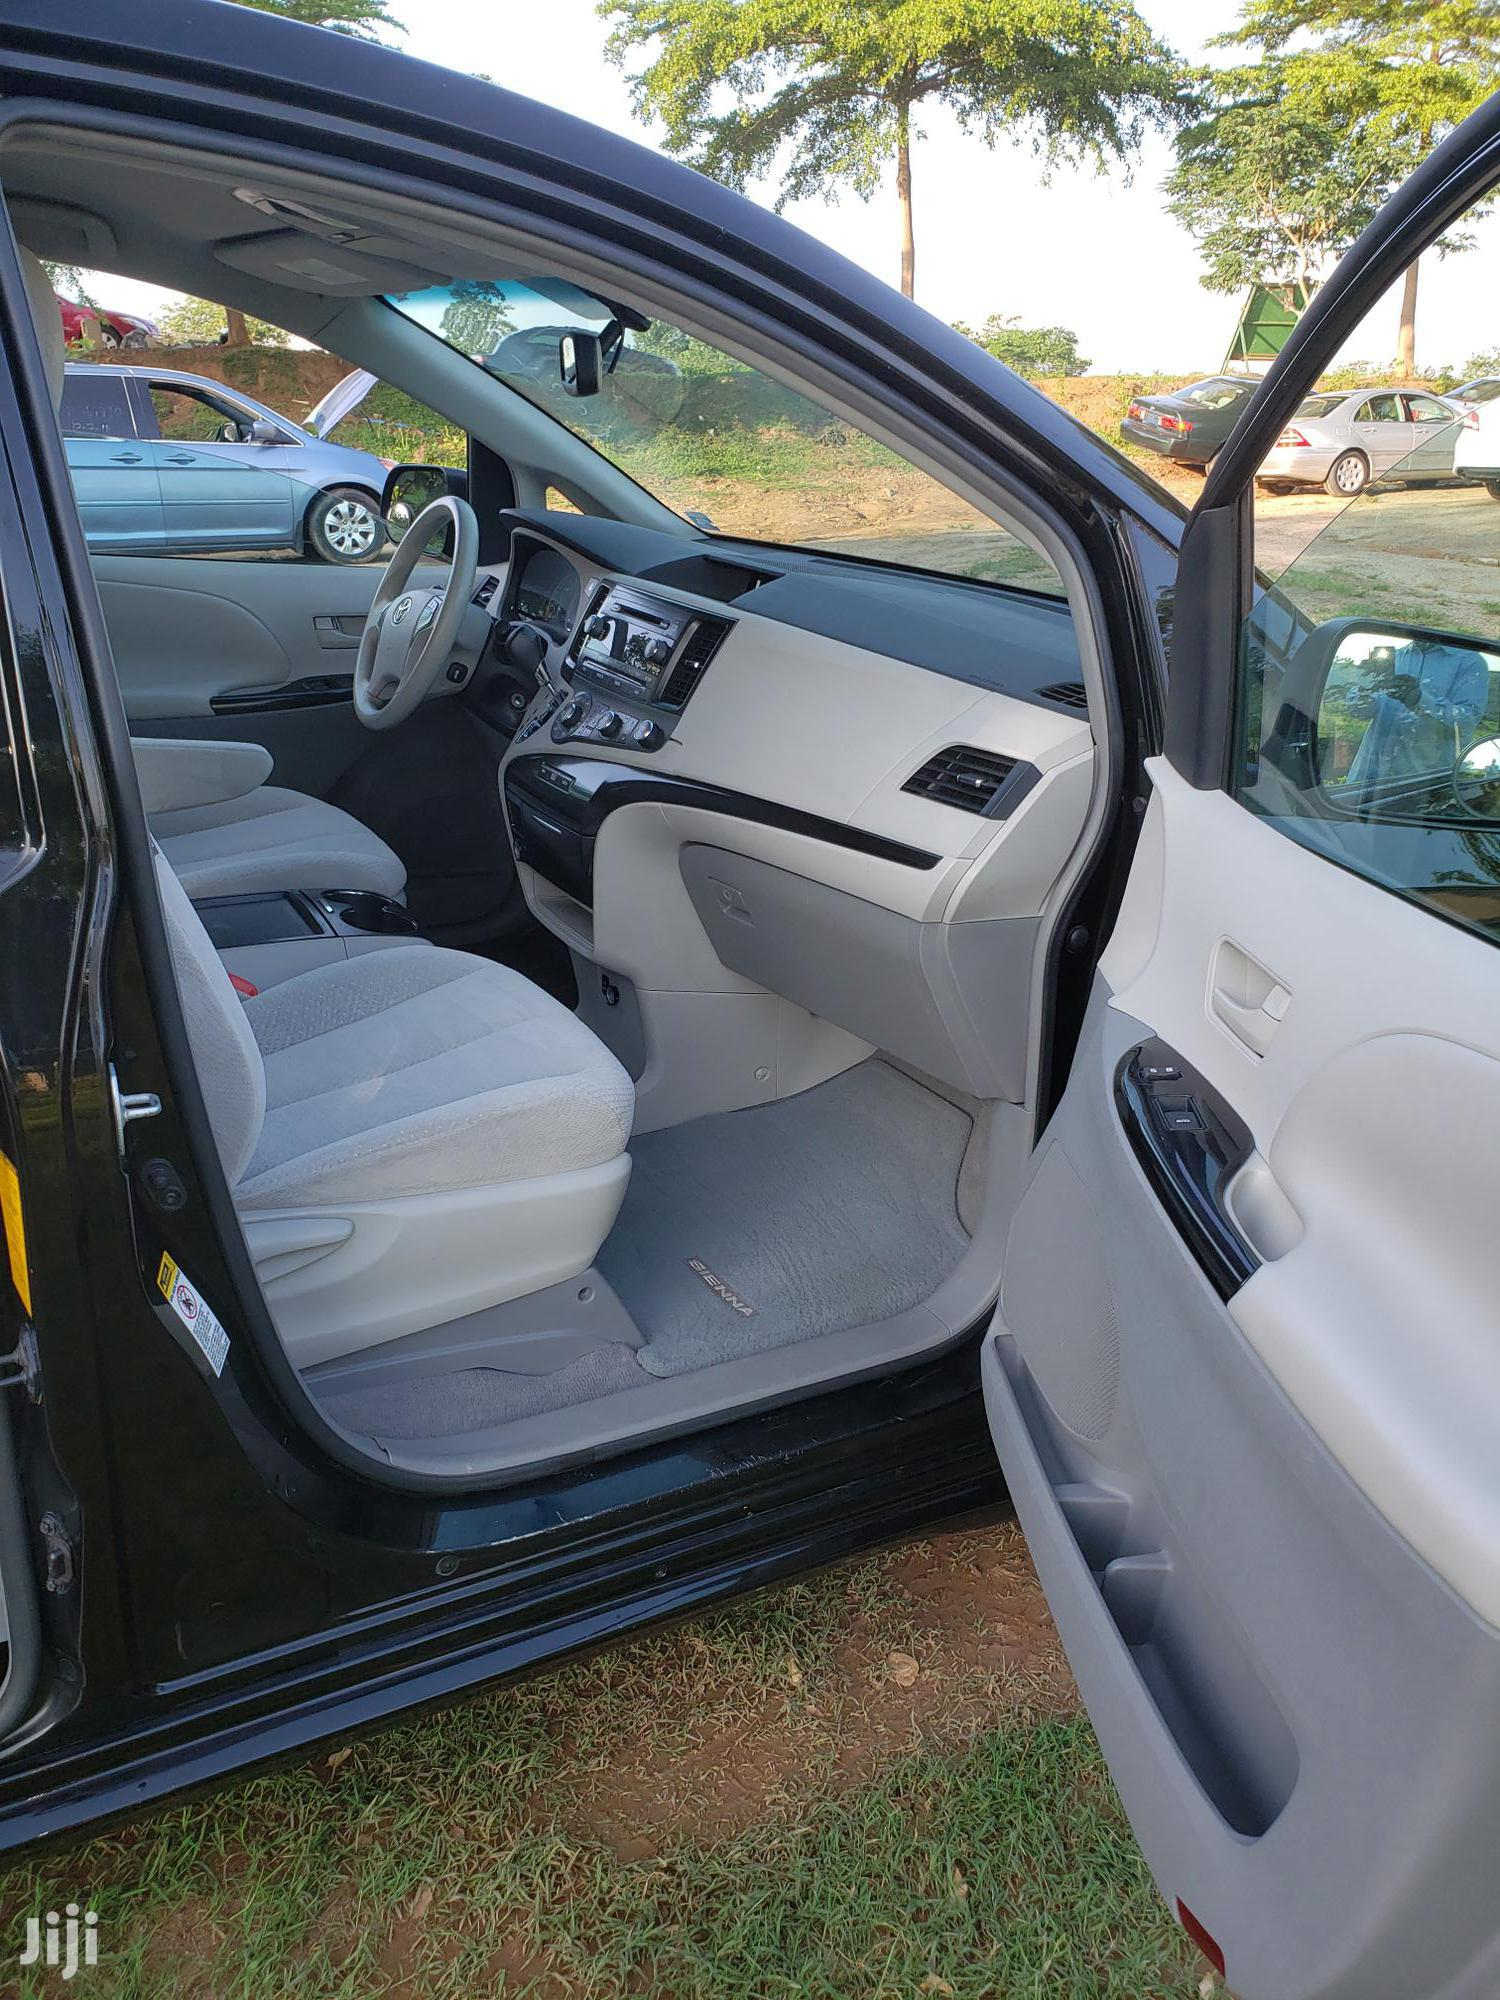 Toyota Sienna 2011 LE 7 Passenger Mobility Black | Cars for sale in Galadimawa, Abuja (FCT) State, Nigeria